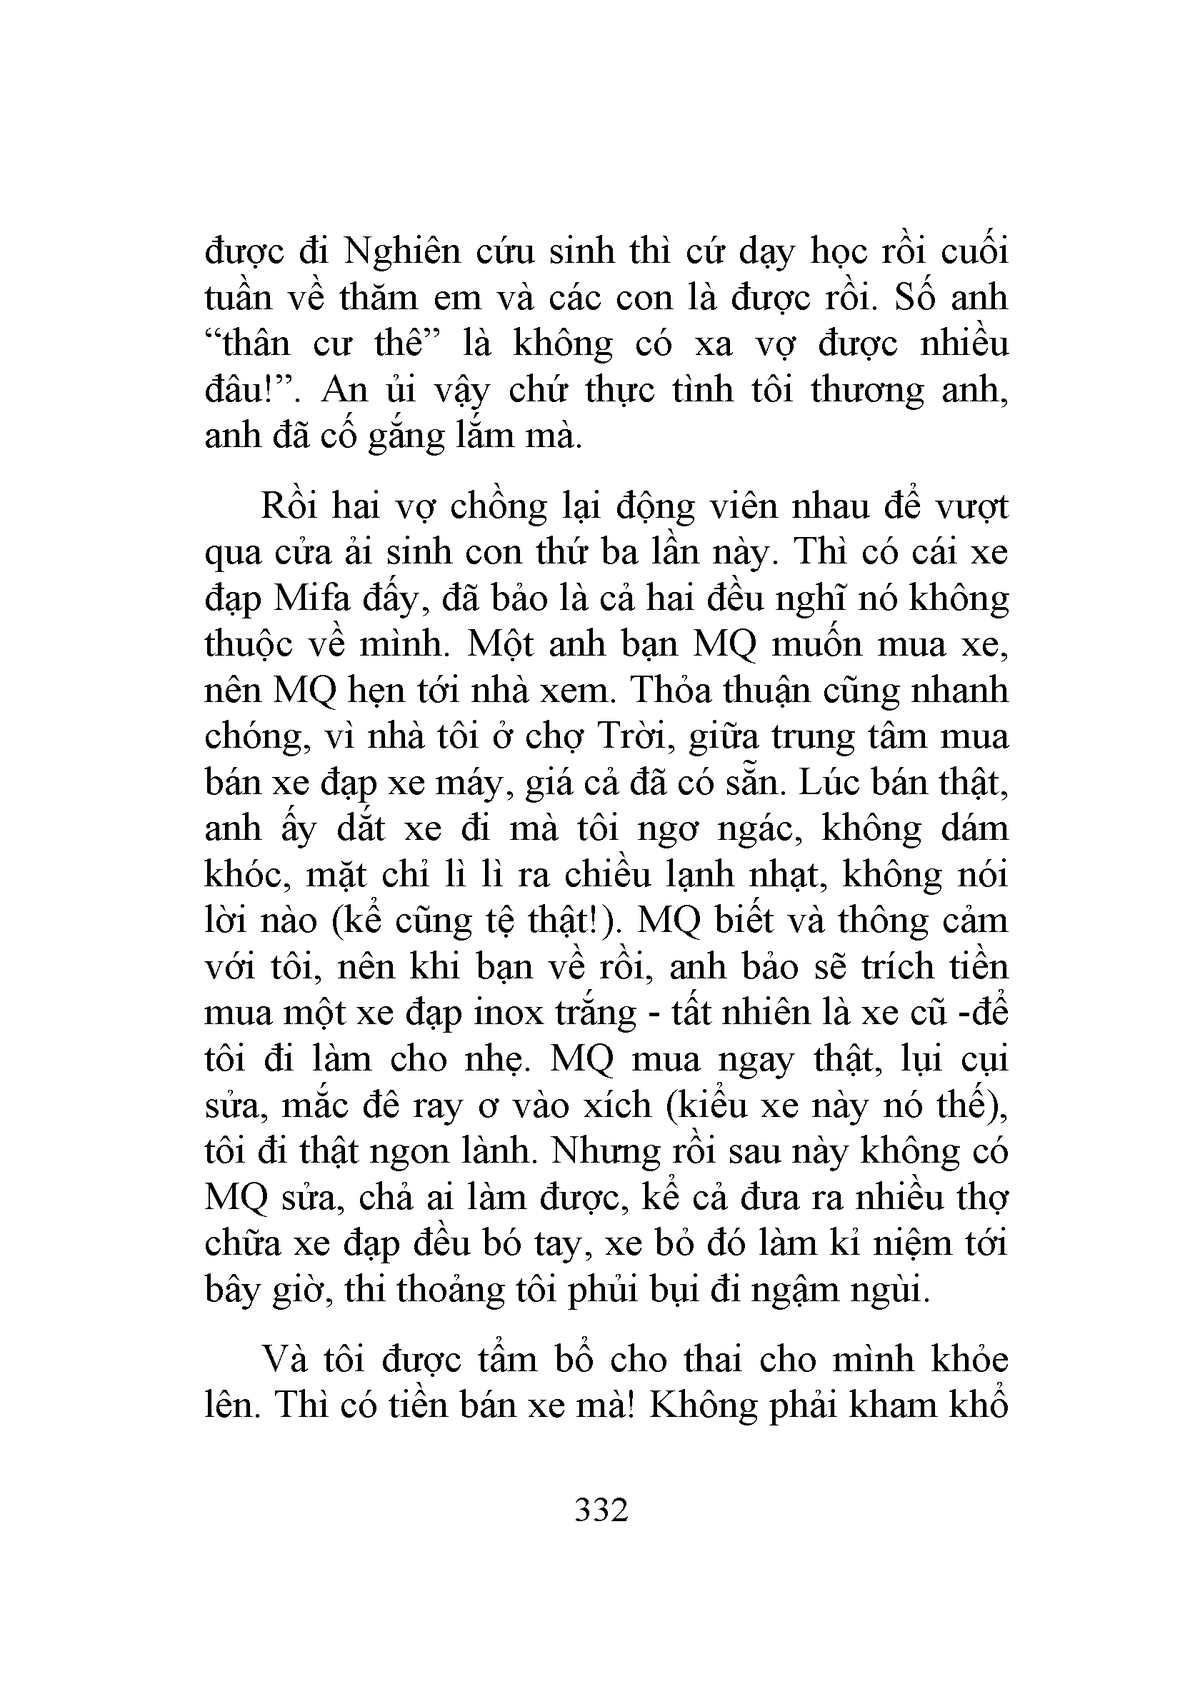 Page 332